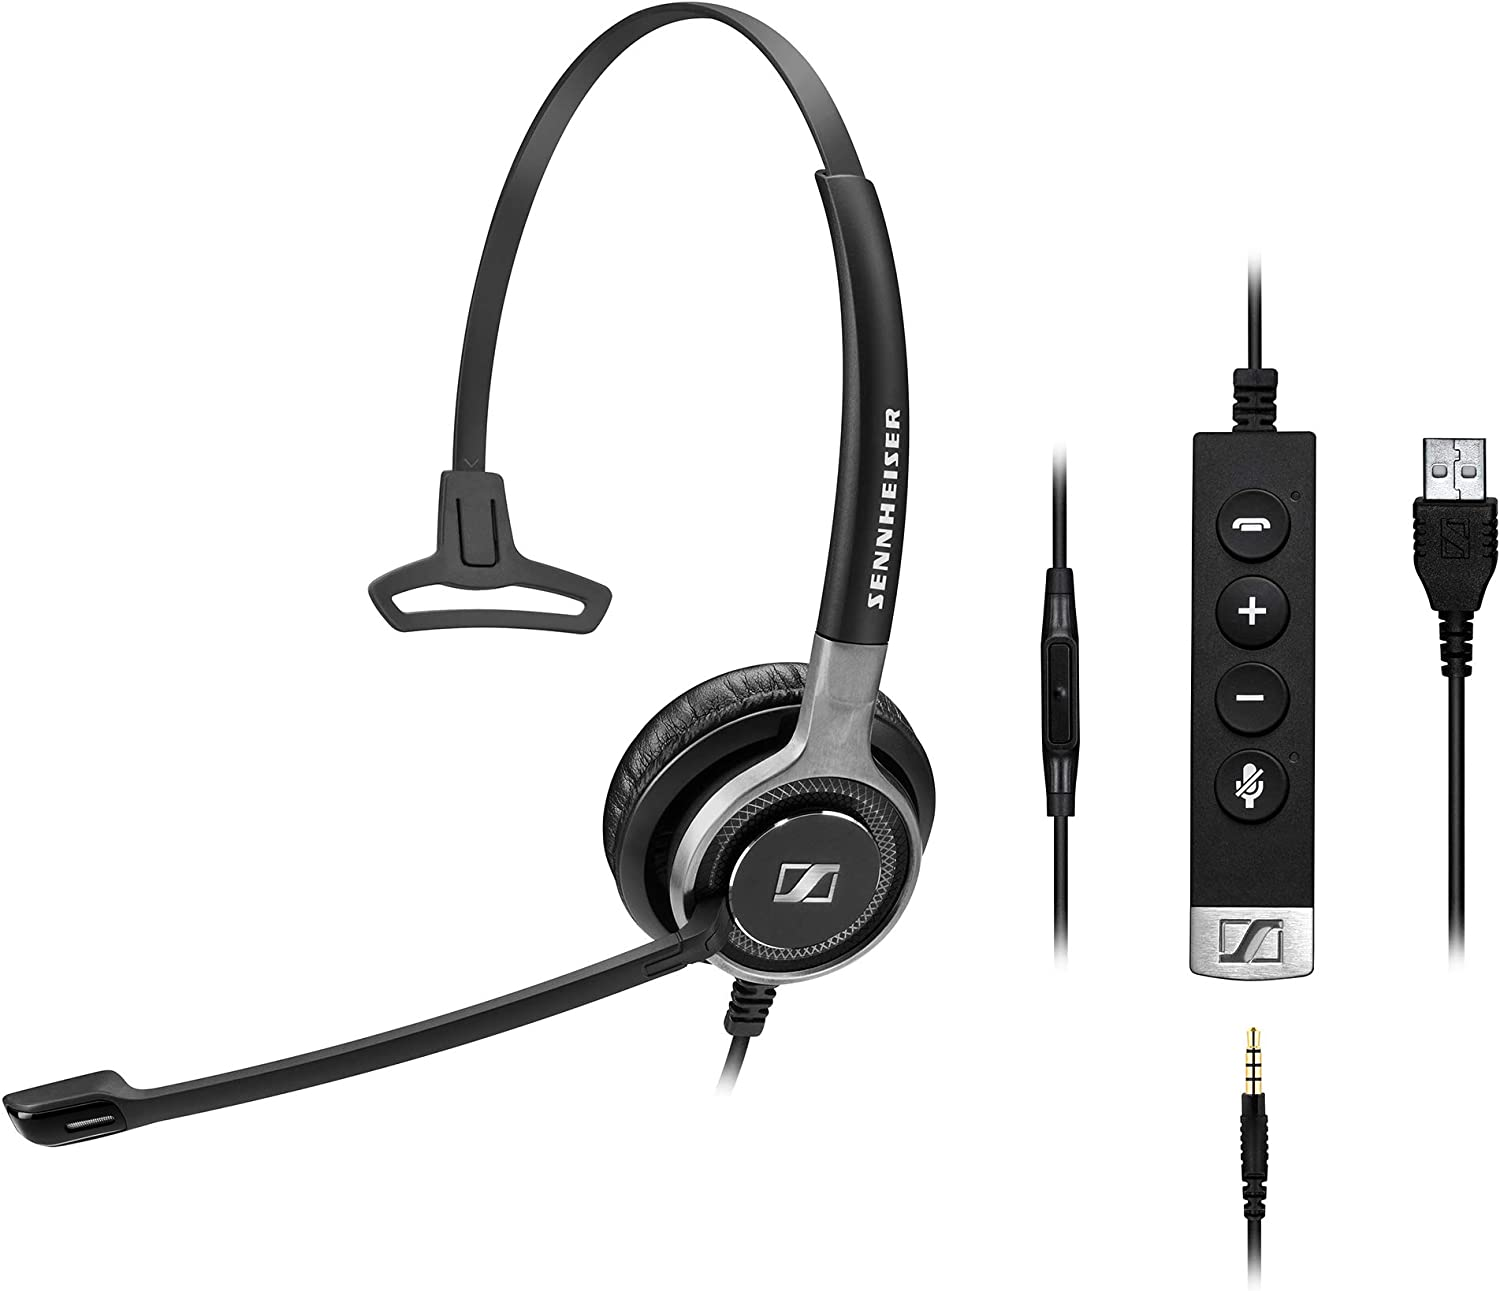 Sennheiser SC 635 USB (507254) - Single-Sided Business Headset | UC Optimized and Skype for Business Certified | For Mobile Phone, Tablet, Softphone, and PC (Black)